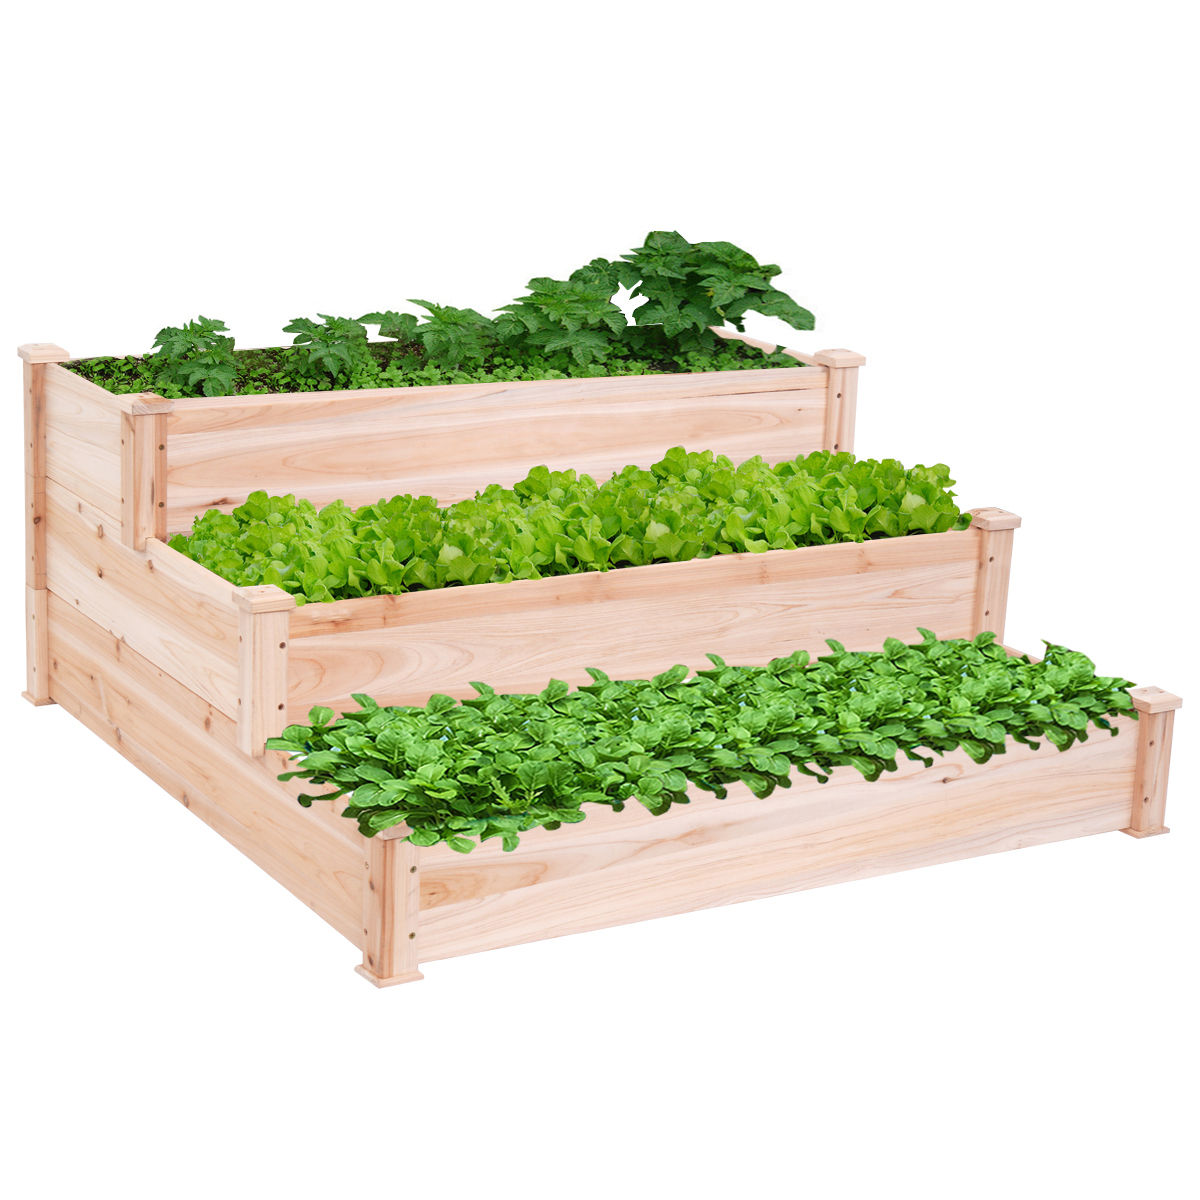 Costway Wooden Raised Vegetable Garden Bed 3 Tier Elevated Planter